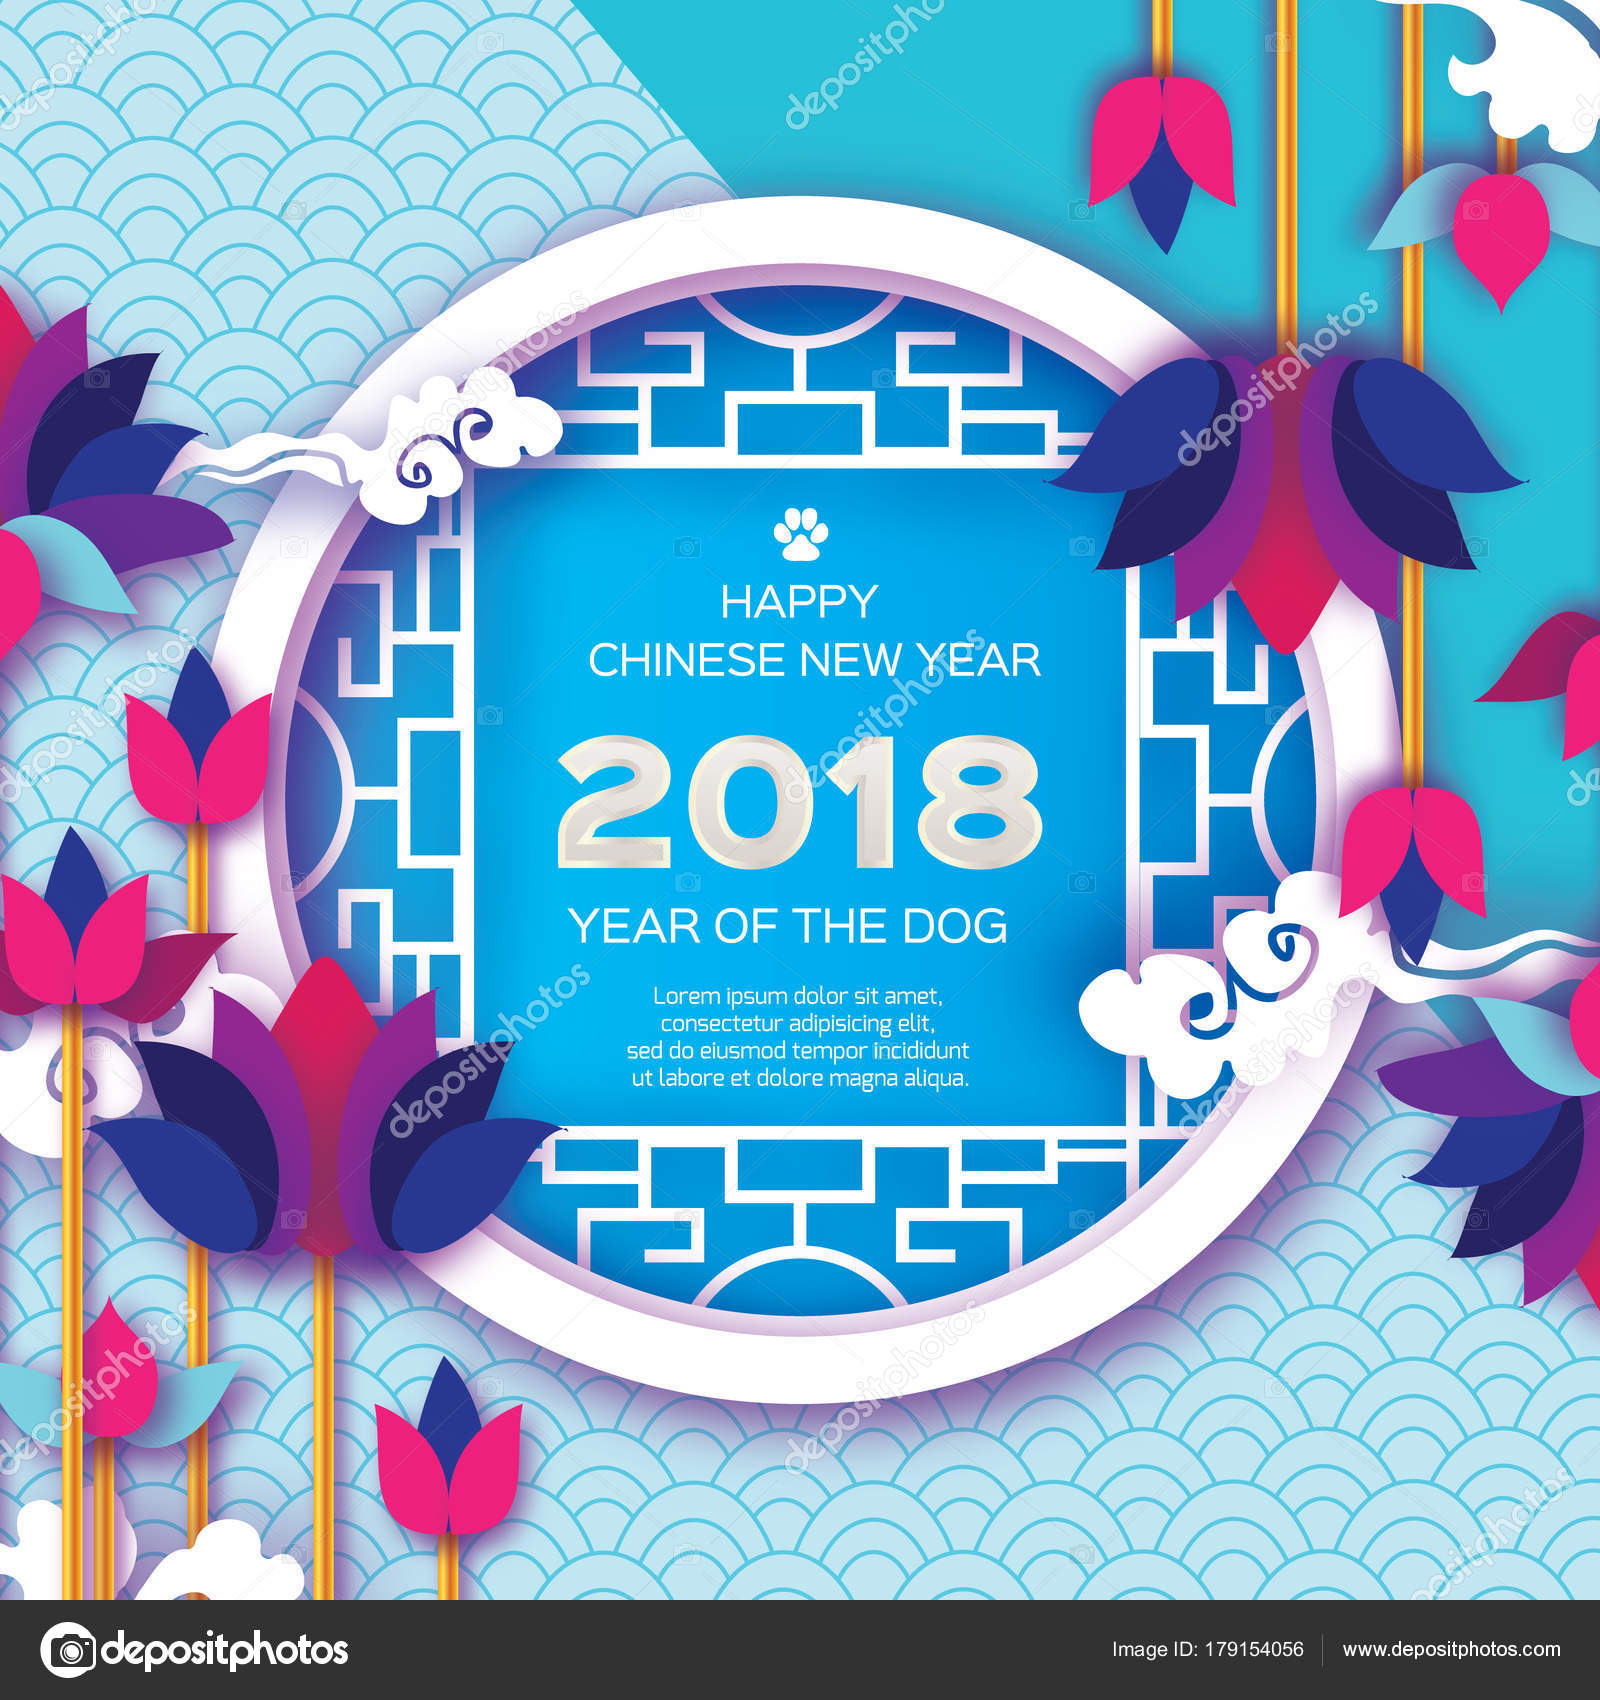 Beautiful origami waterlily or lotus flower happy chinese new year beautiful origami waterlily or lotus flower happy chinese new year 2018 greeting card year of the dog text cicle traditional window izmirmasajfo